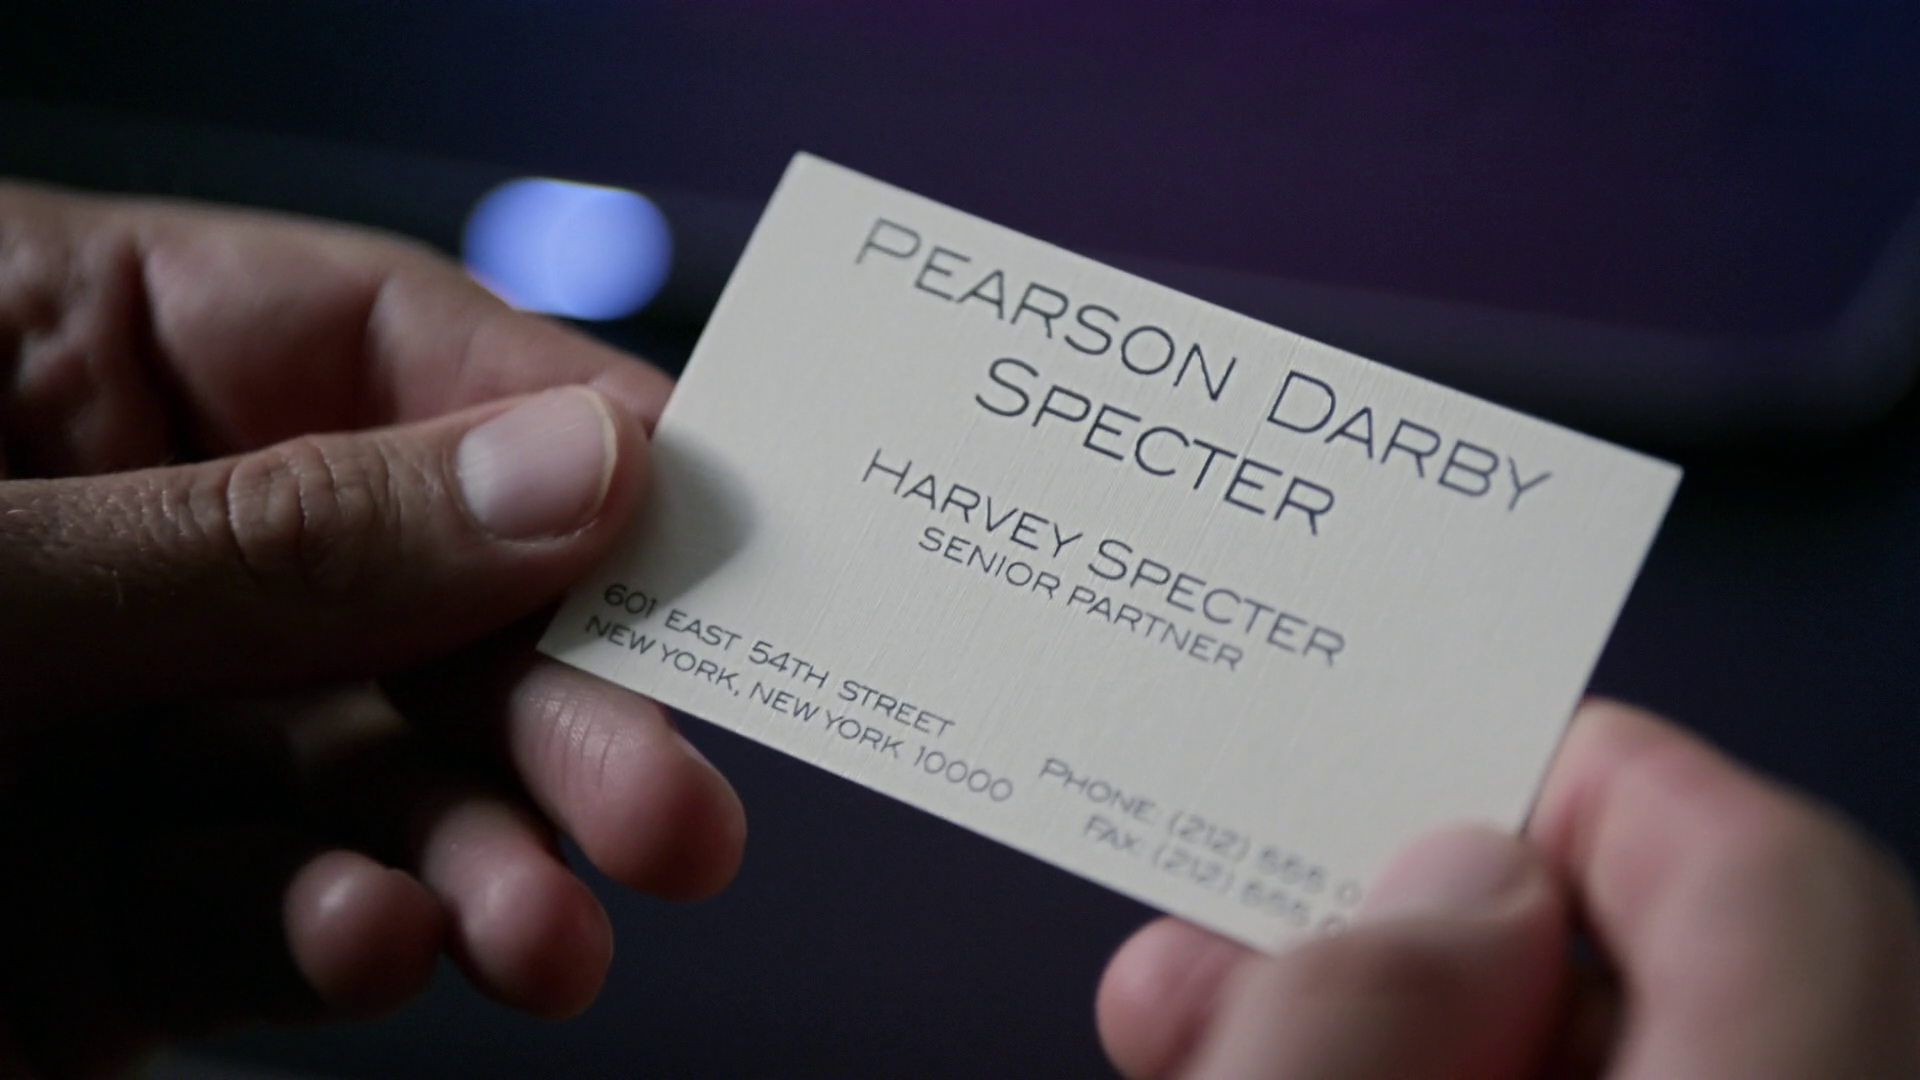 Image harveys promotion pearson darby specterg suits harveys promotion pearson darby specterg magicingreecefo Image collections